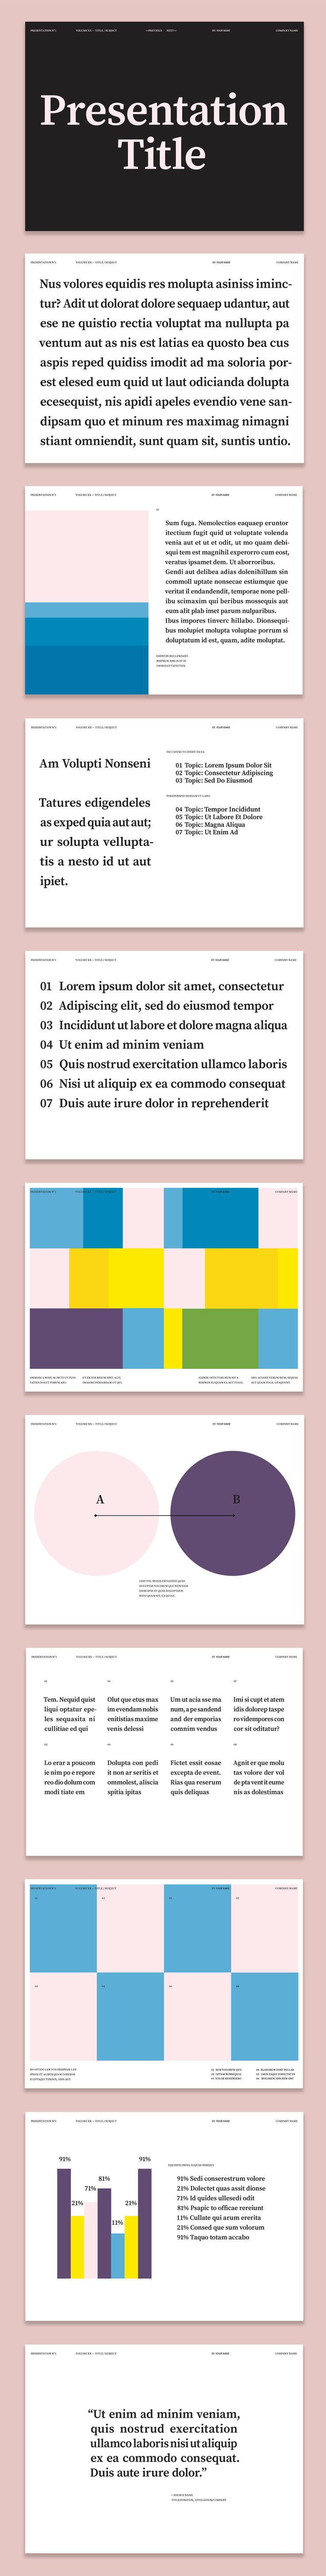 Colorful Presentation Layout - image | Adobe Stock